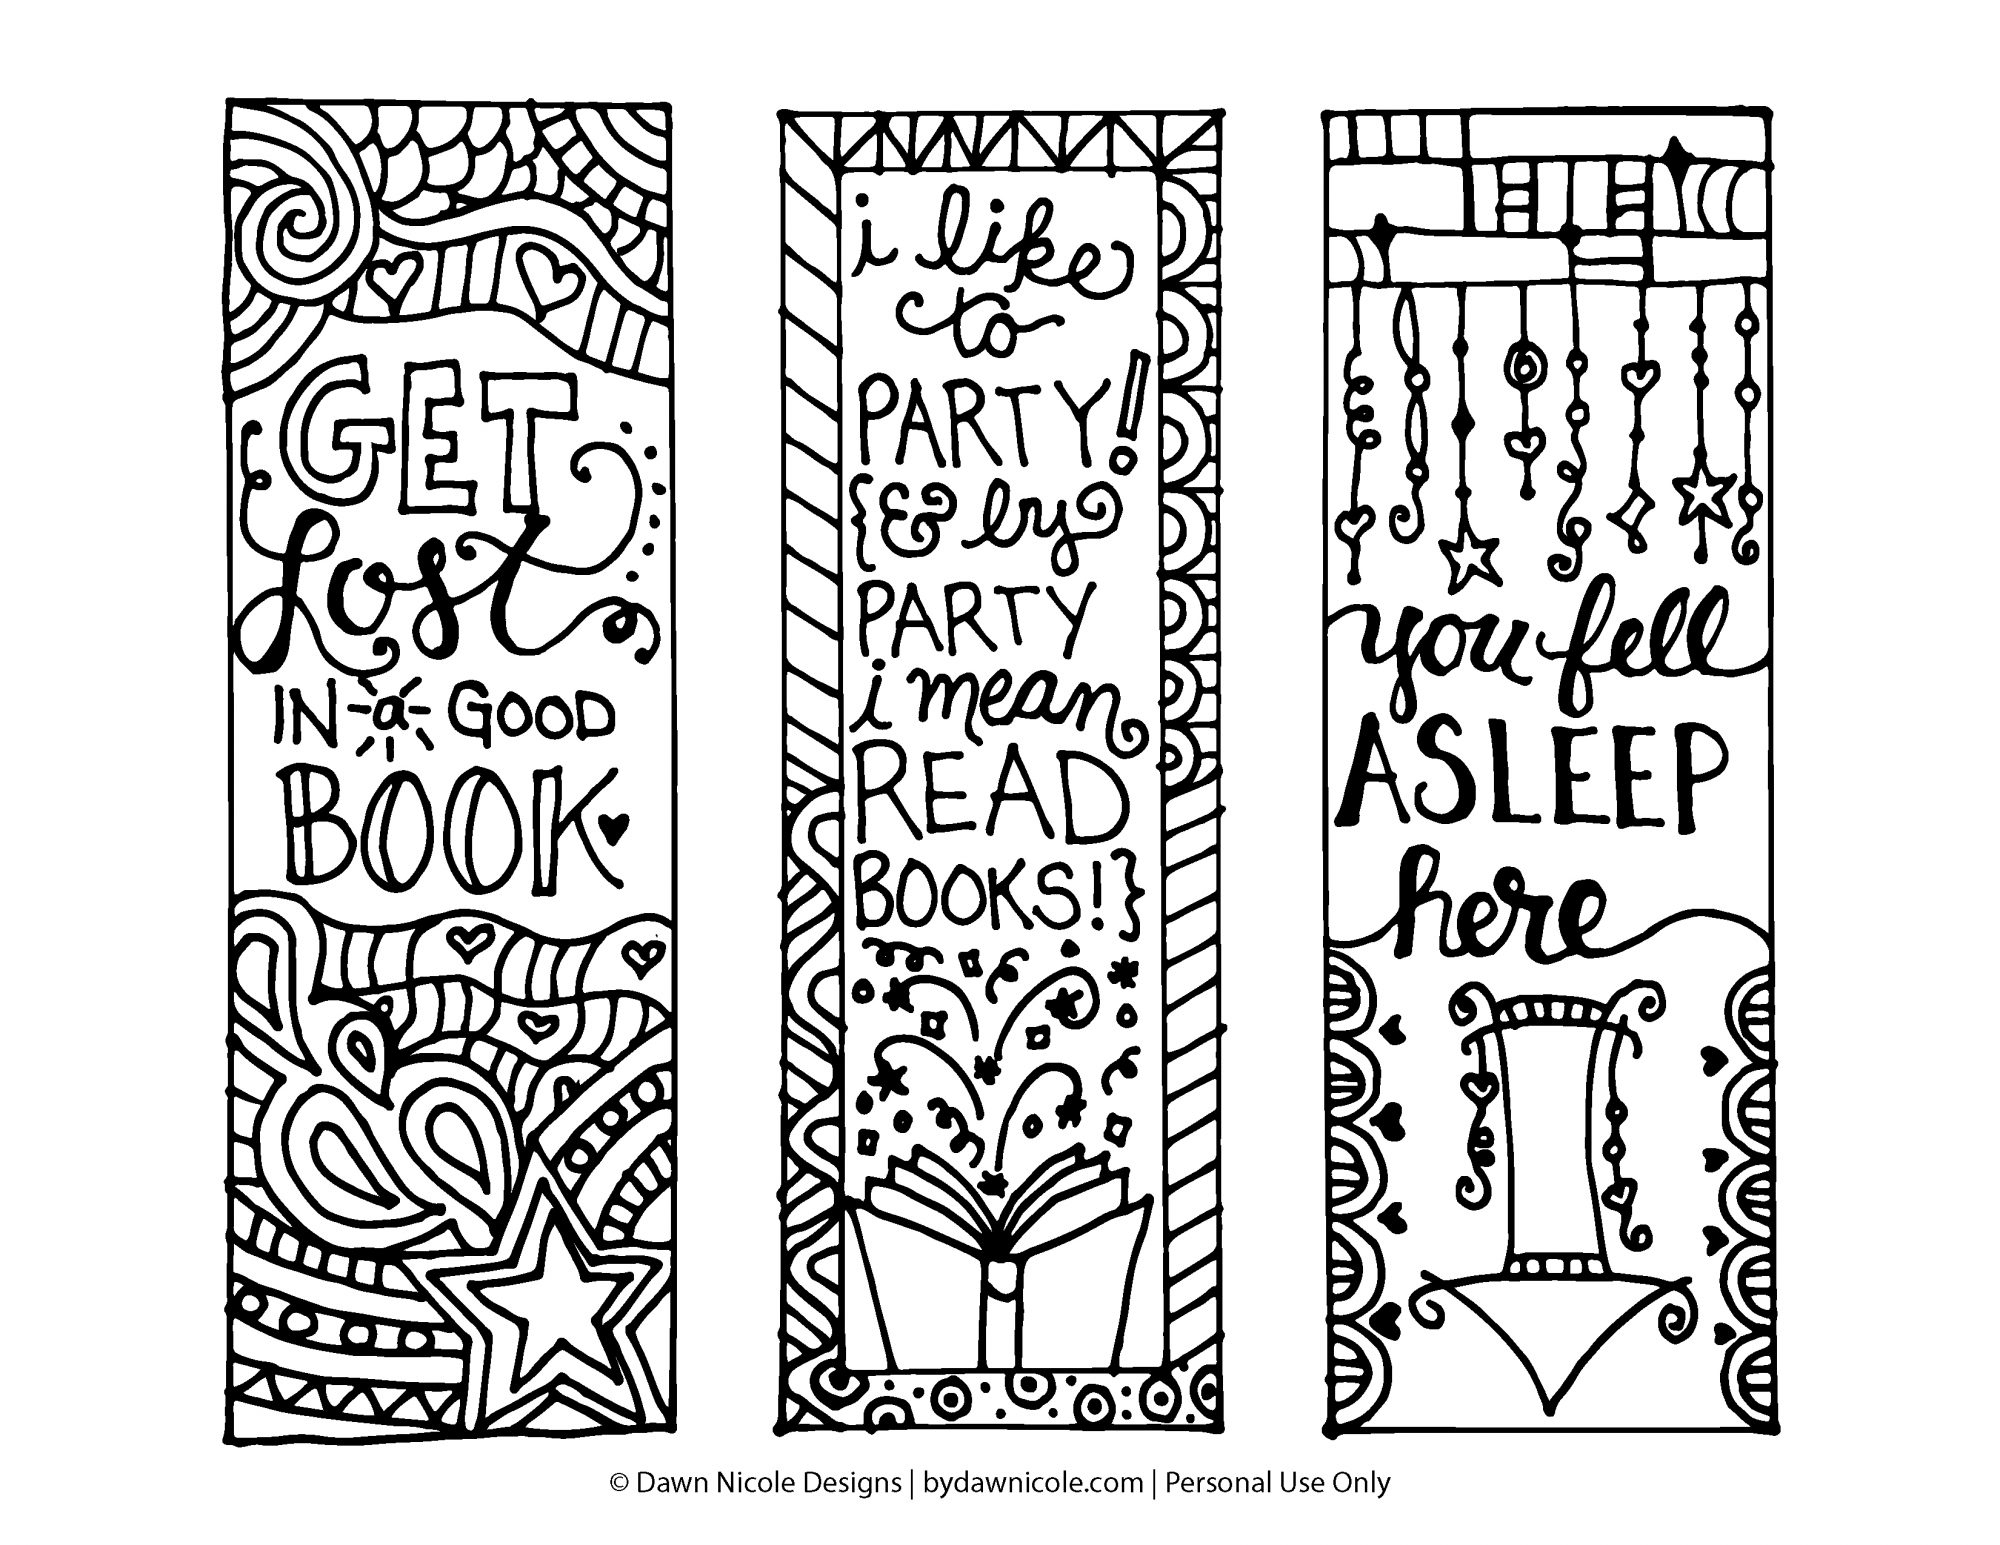 Free Printable Coloring Page Bookmarks | Dawn Nicole Designs® - Free Printable Bookmarks